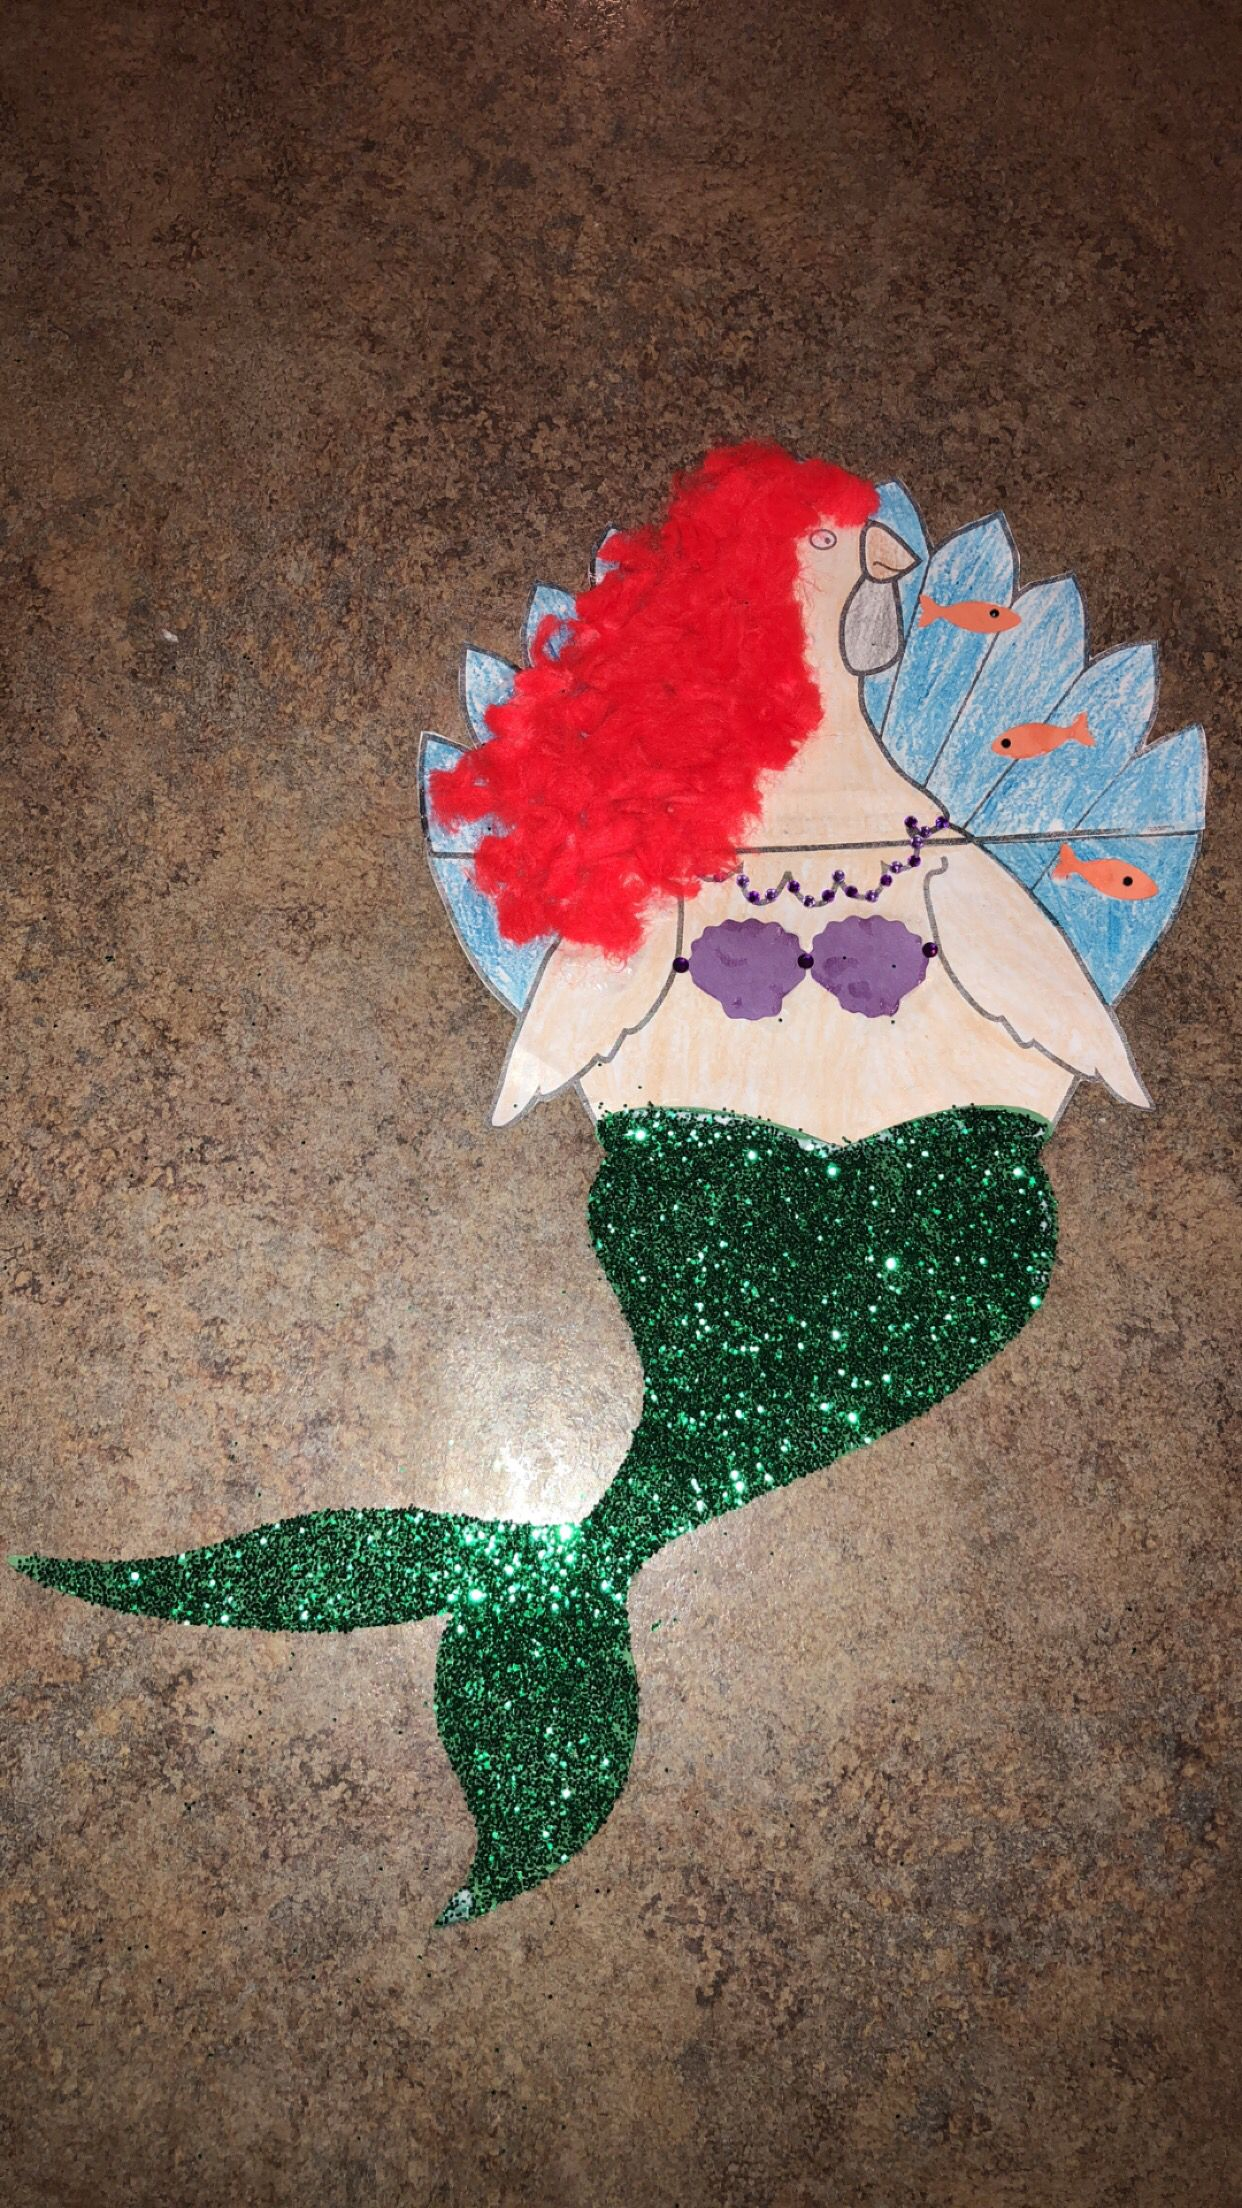 Disguise Turkey Project -   14 mermaid turkey disguise project ideas